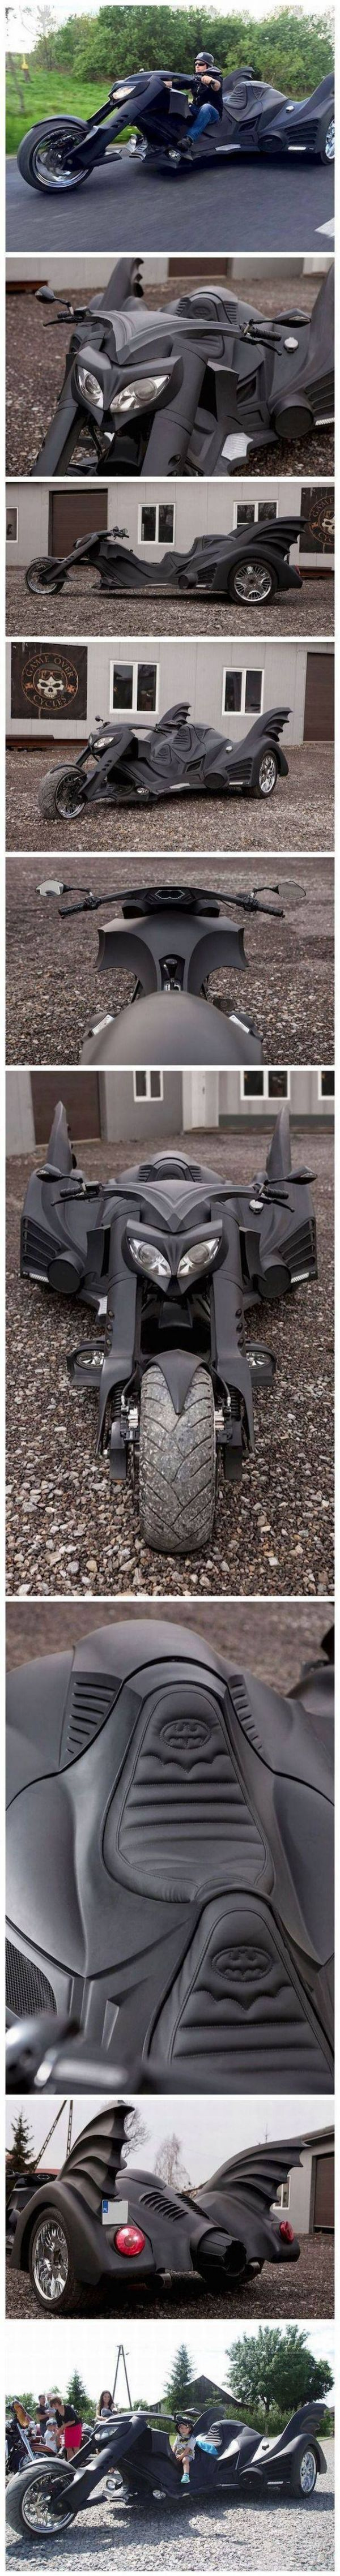 motorraeder batman trike motorrad die besten 100. Black Bedroom Furniture Sets. Home Design Ideas